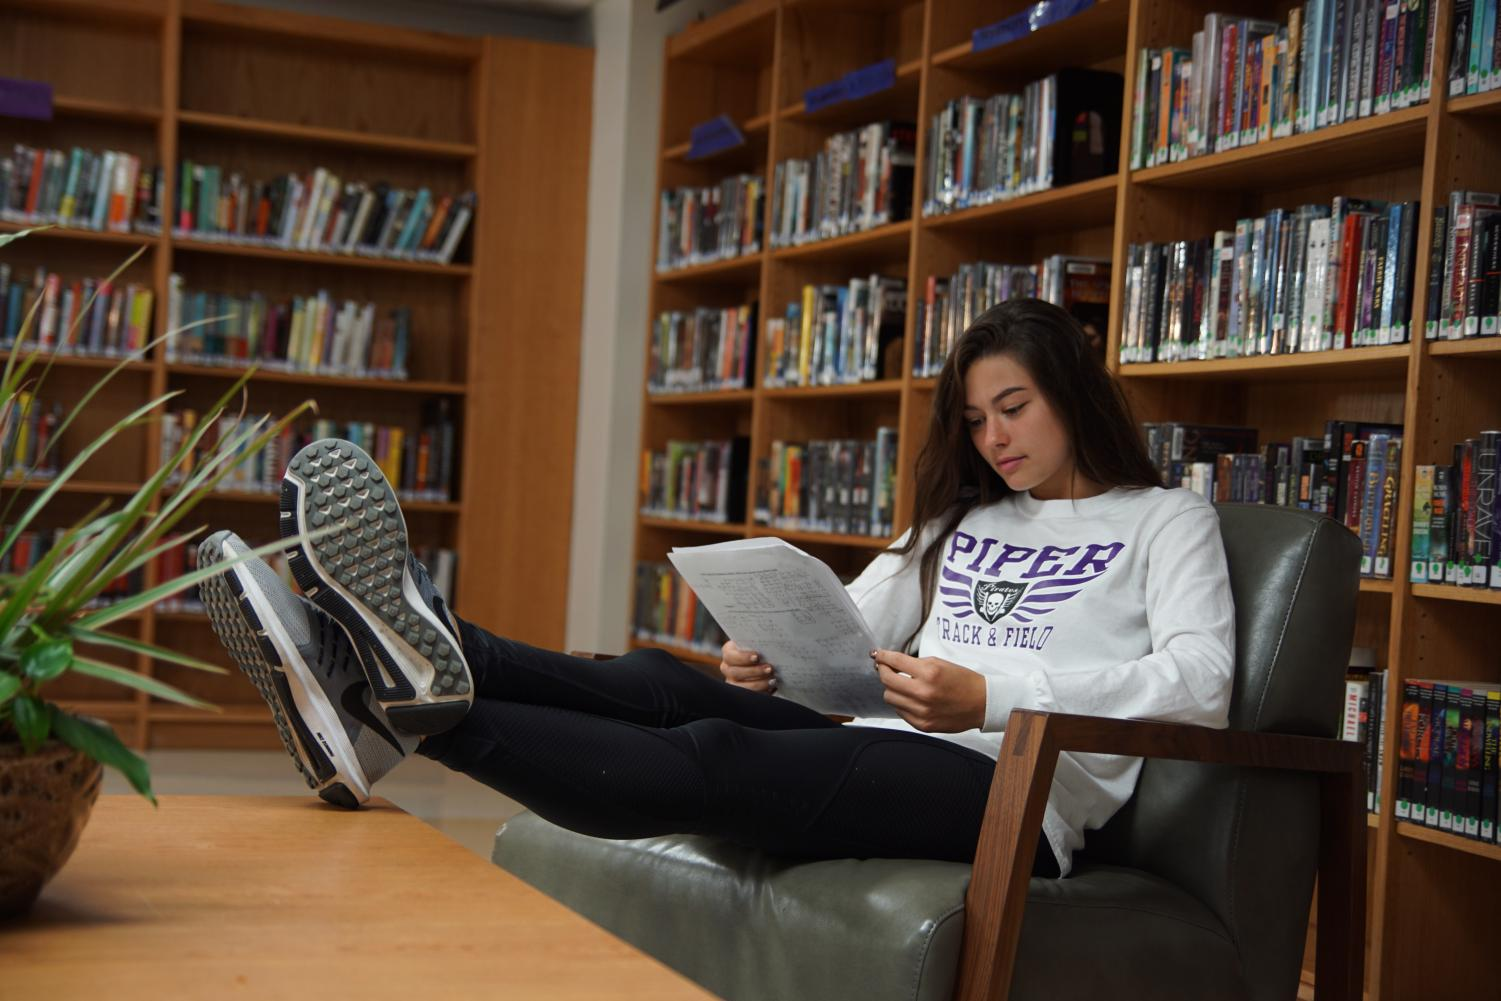 Senior Lexi Nigh studies for finals in the library.